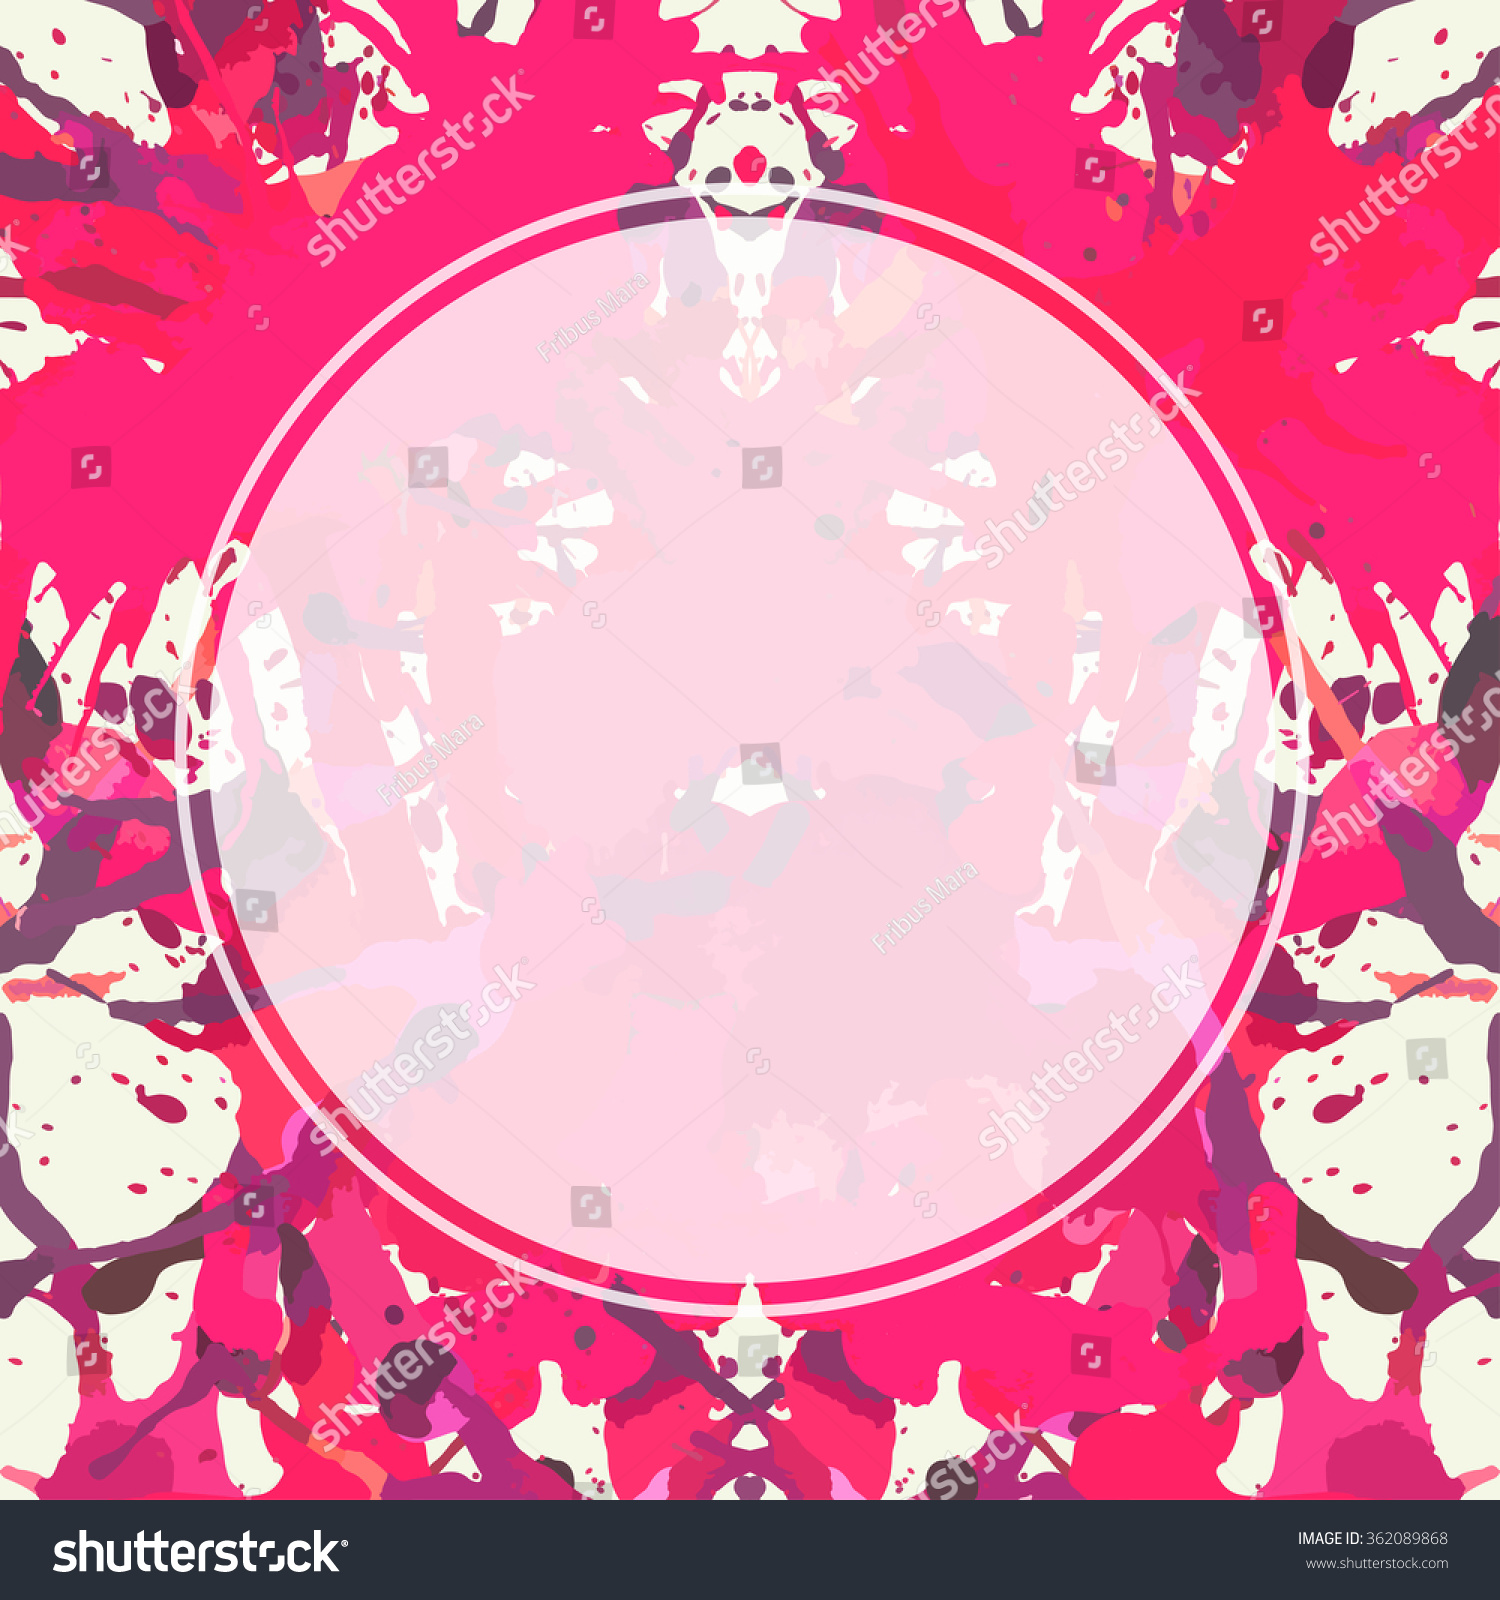 Bright Pink Paint Template Semitransparent White Circle Over Bright Stock Vector